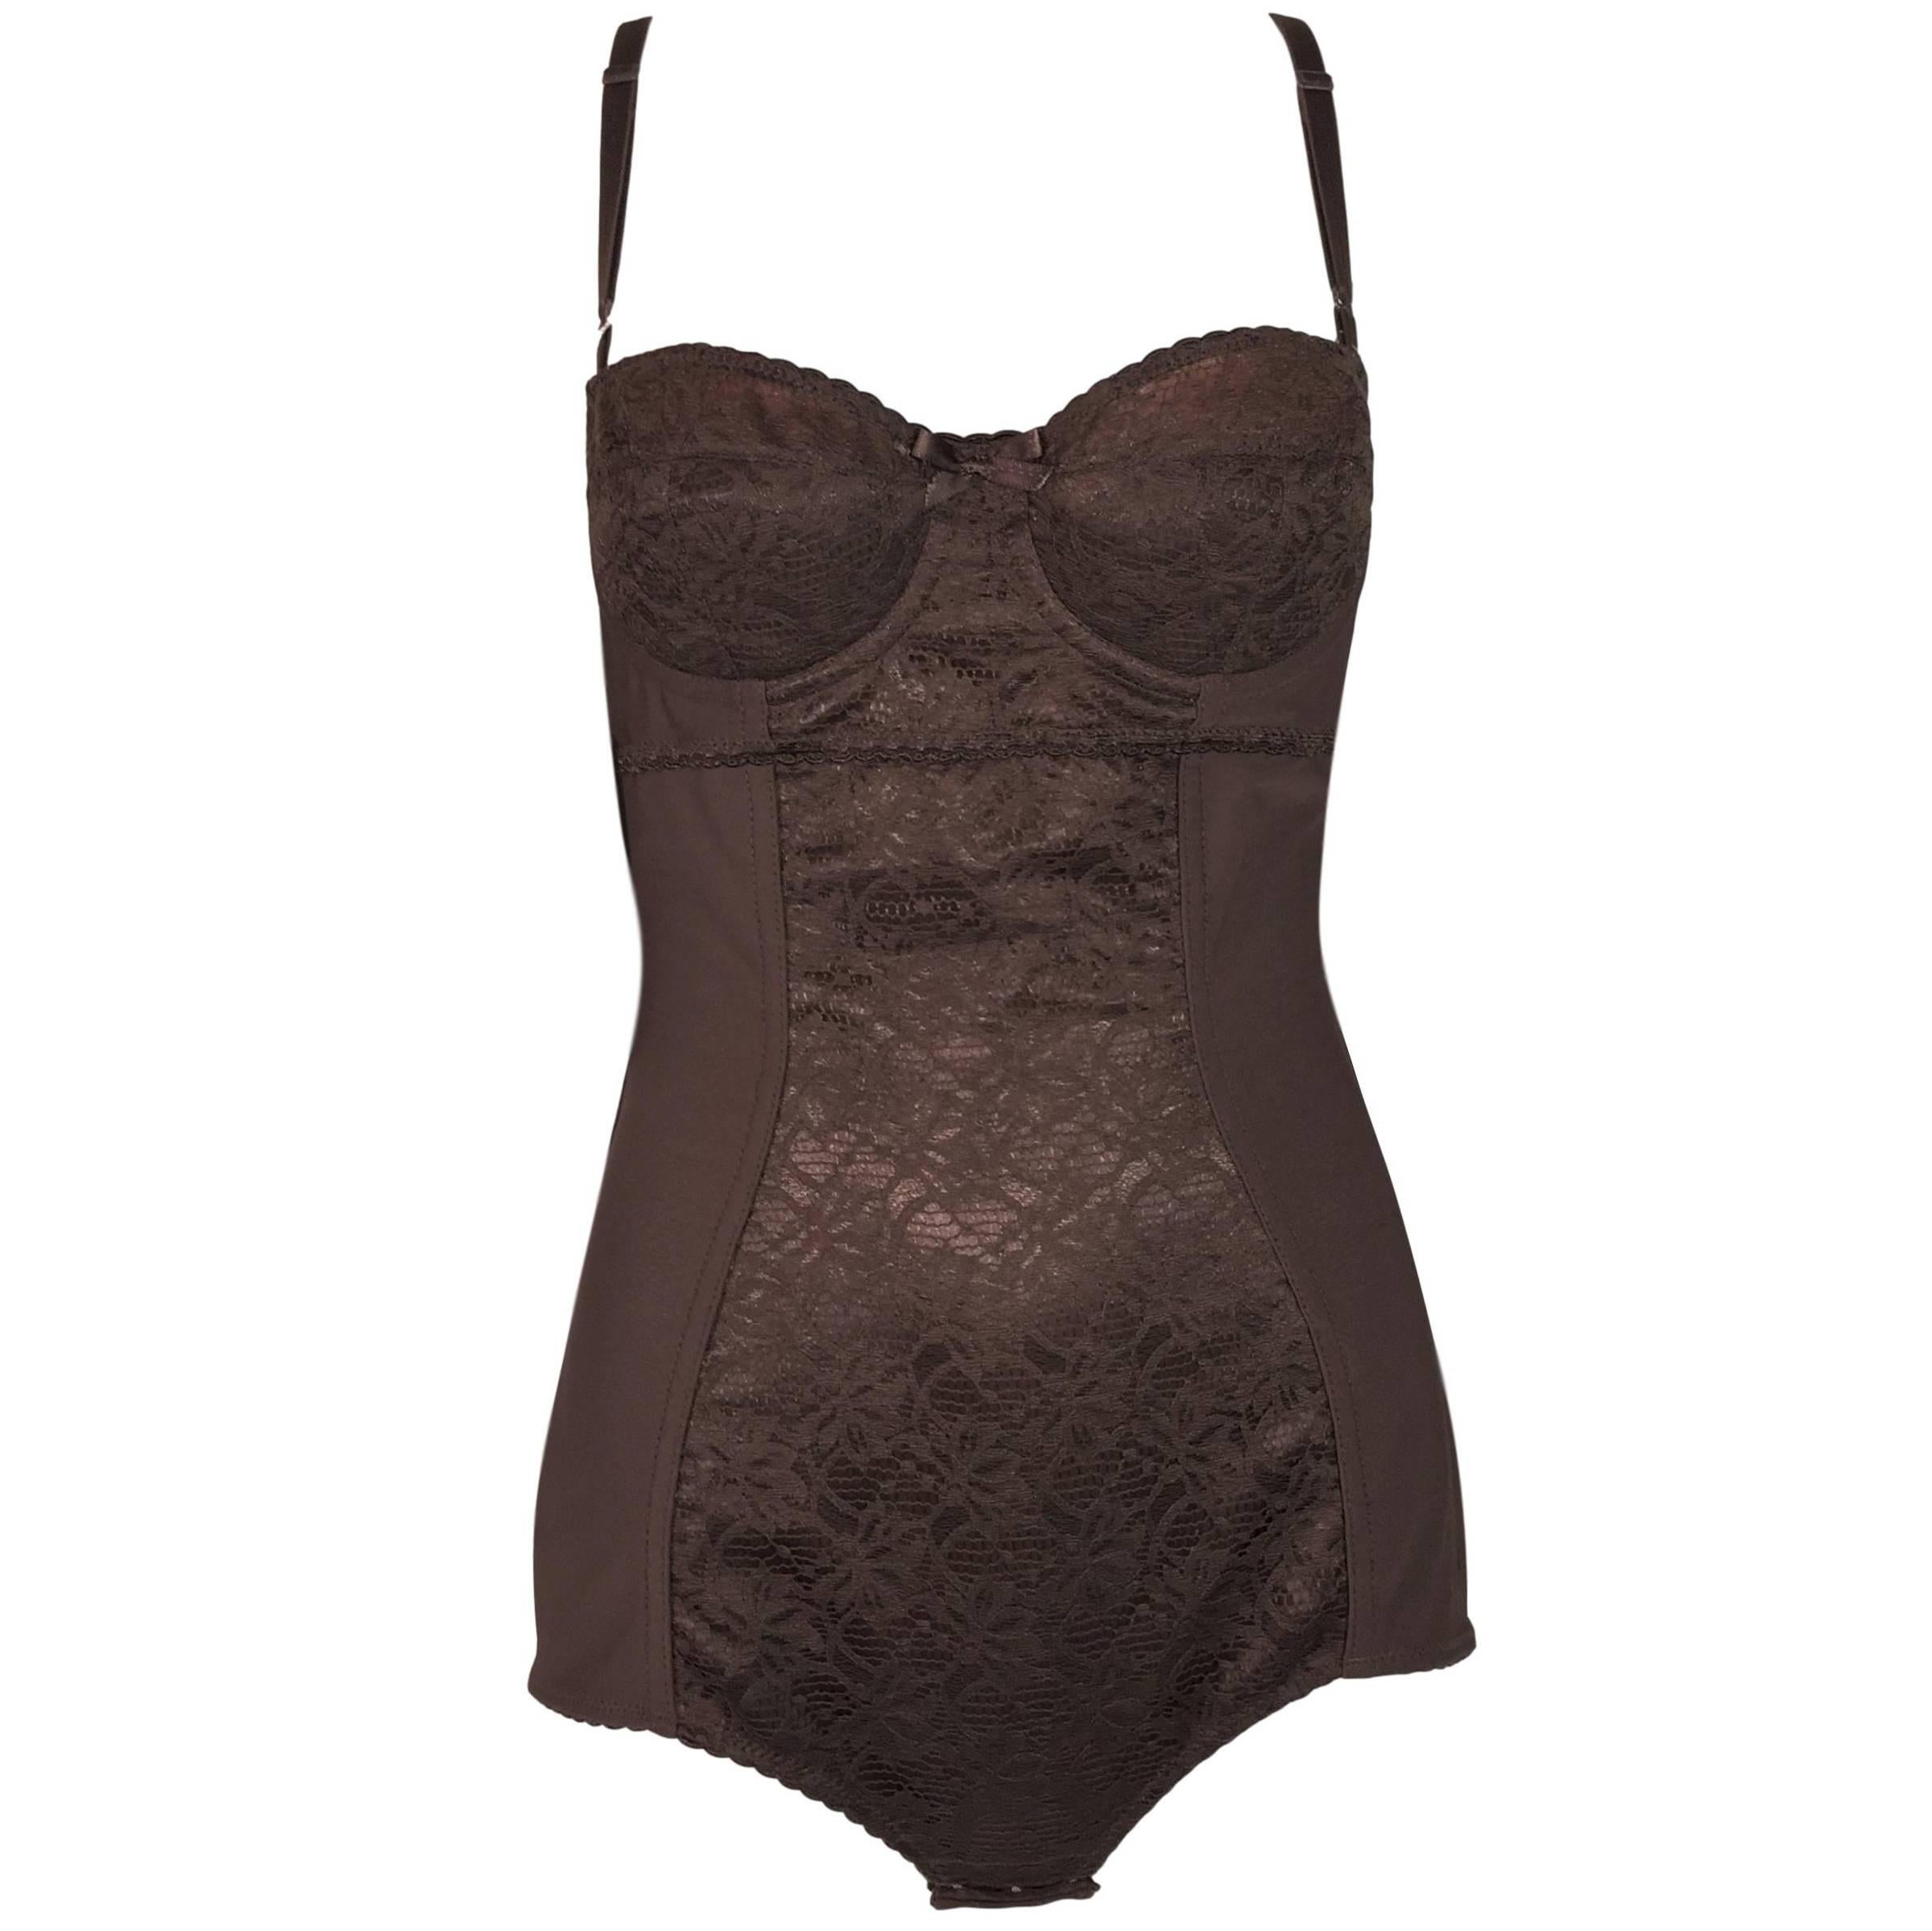 60c1ea142b 1996 Dolce and Gabbana Brown Lace Corset Bodysuit Top at 1stdibs